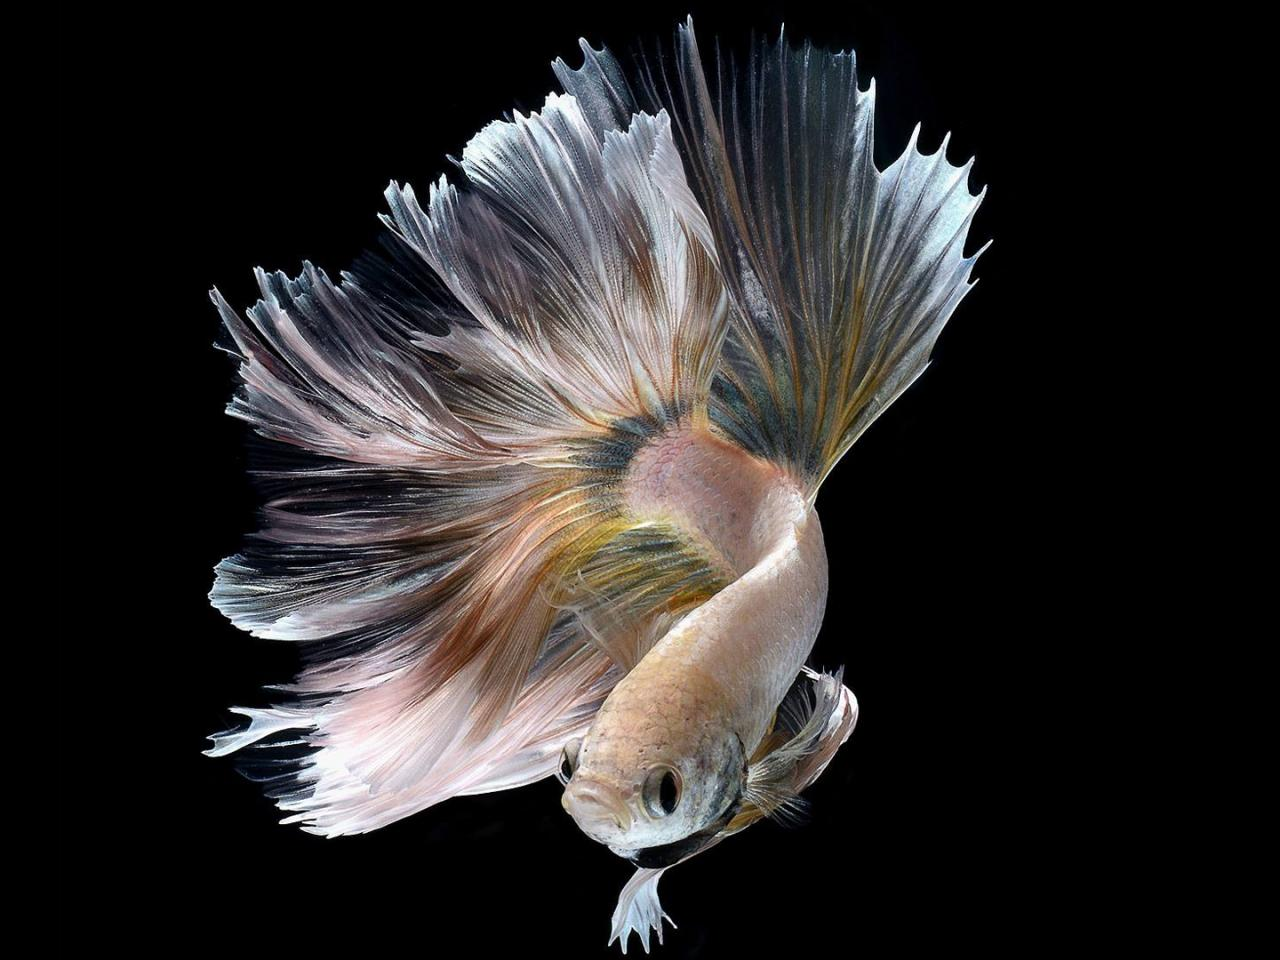 Cute Butterflies Hd Wallpapers Halfmoon Albino Betta Fish Picture 18 Of 20 Wallpapers